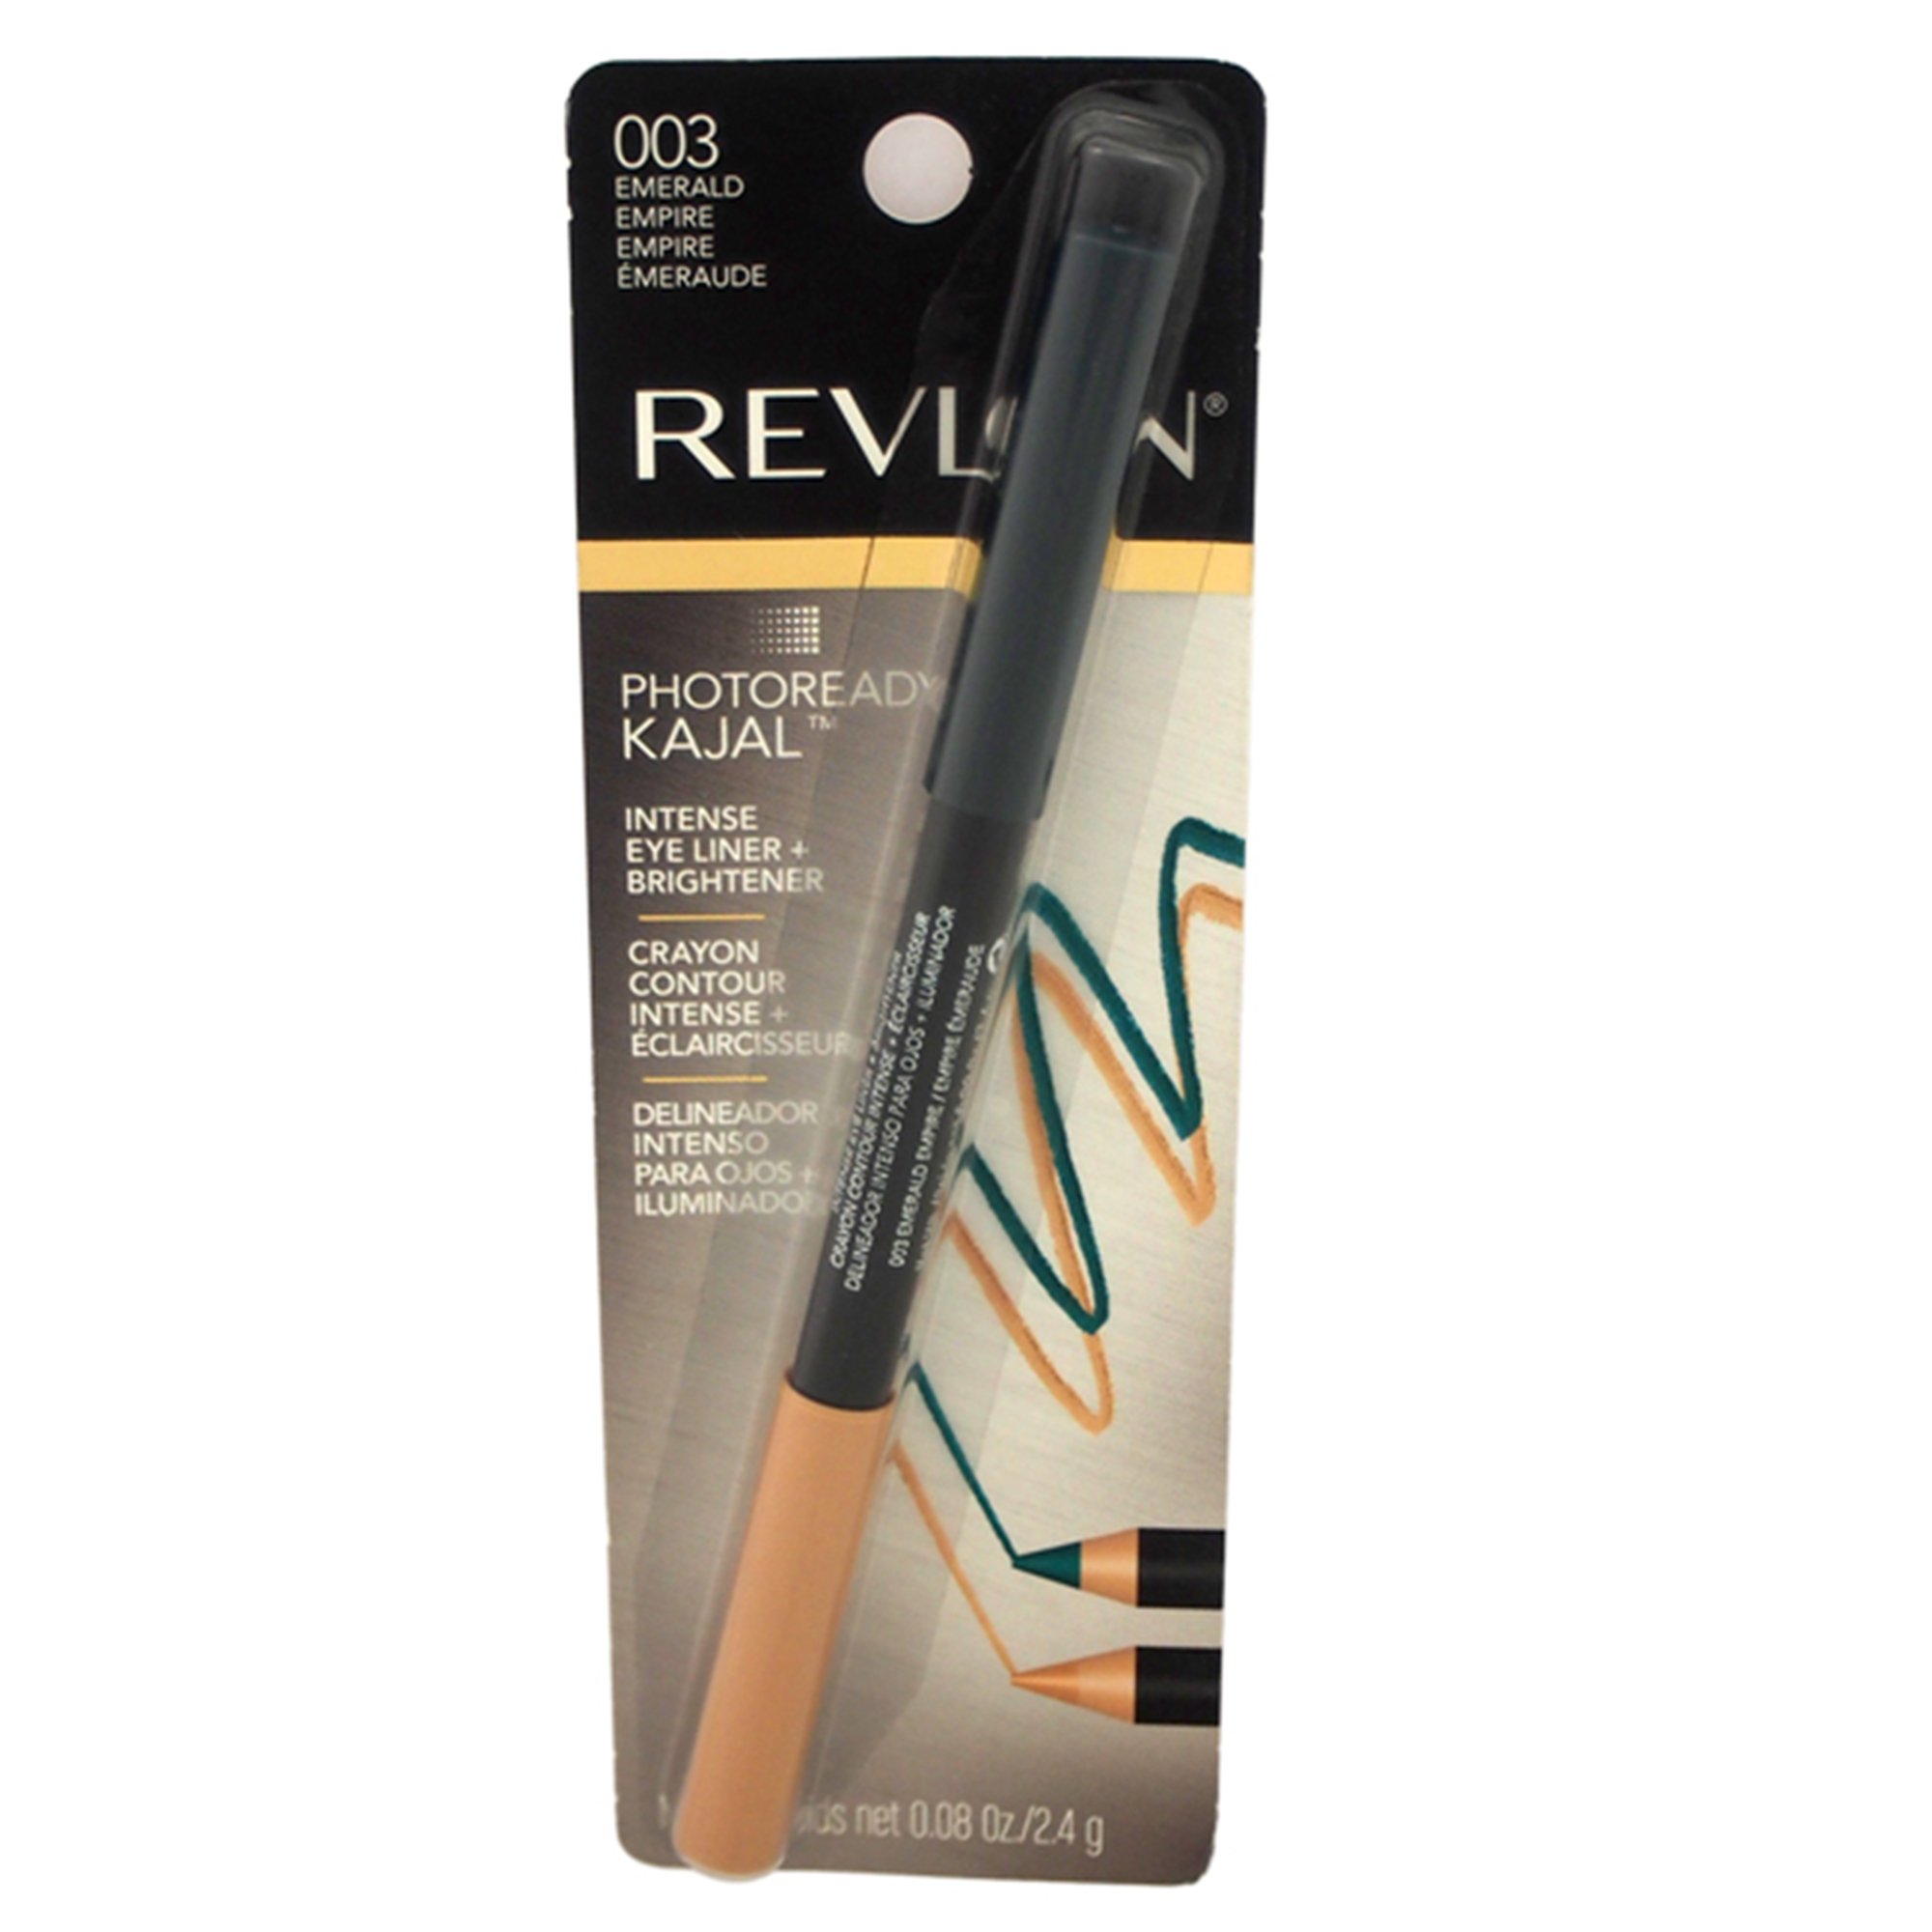 Revlon Photo Ready Kajal Intense Eye Liner & Brightener - Emerald Empire - 0.08 oz